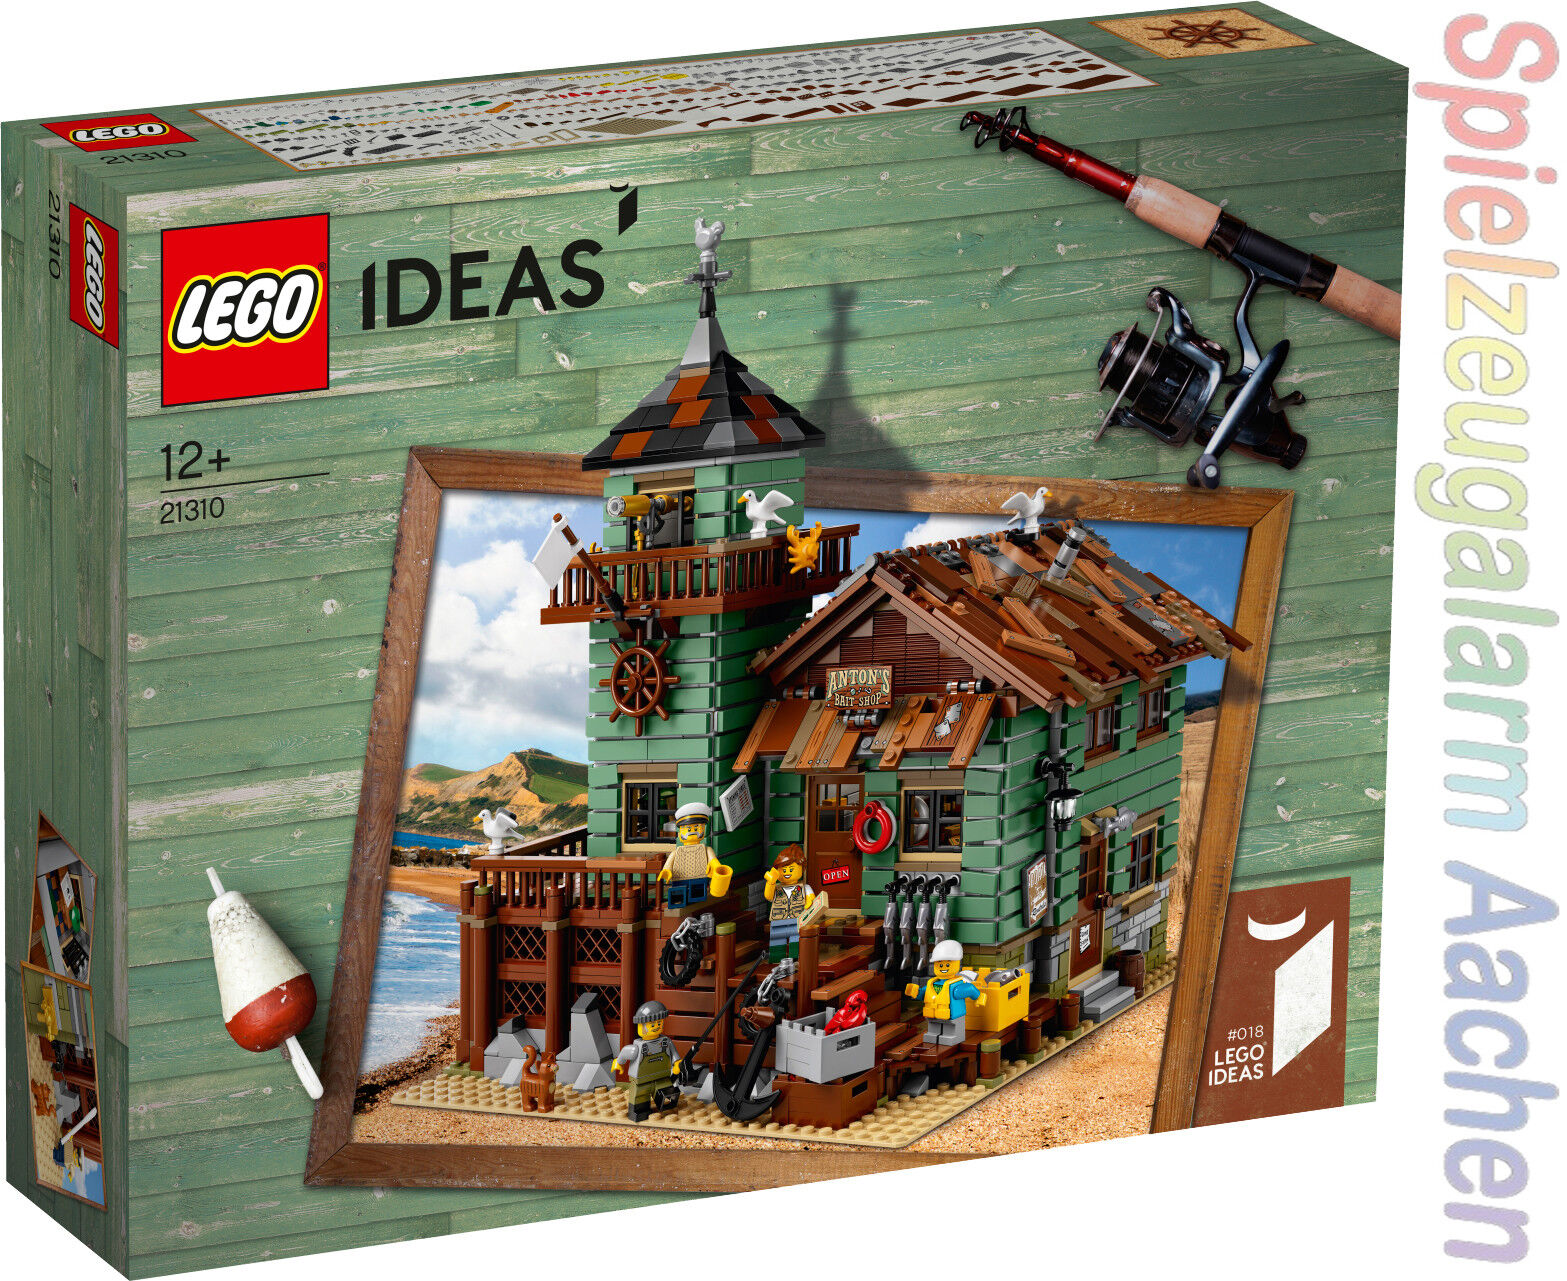 Lego ® ideas 21310 edad angel cargar old fishing Store Design modelo Super rar